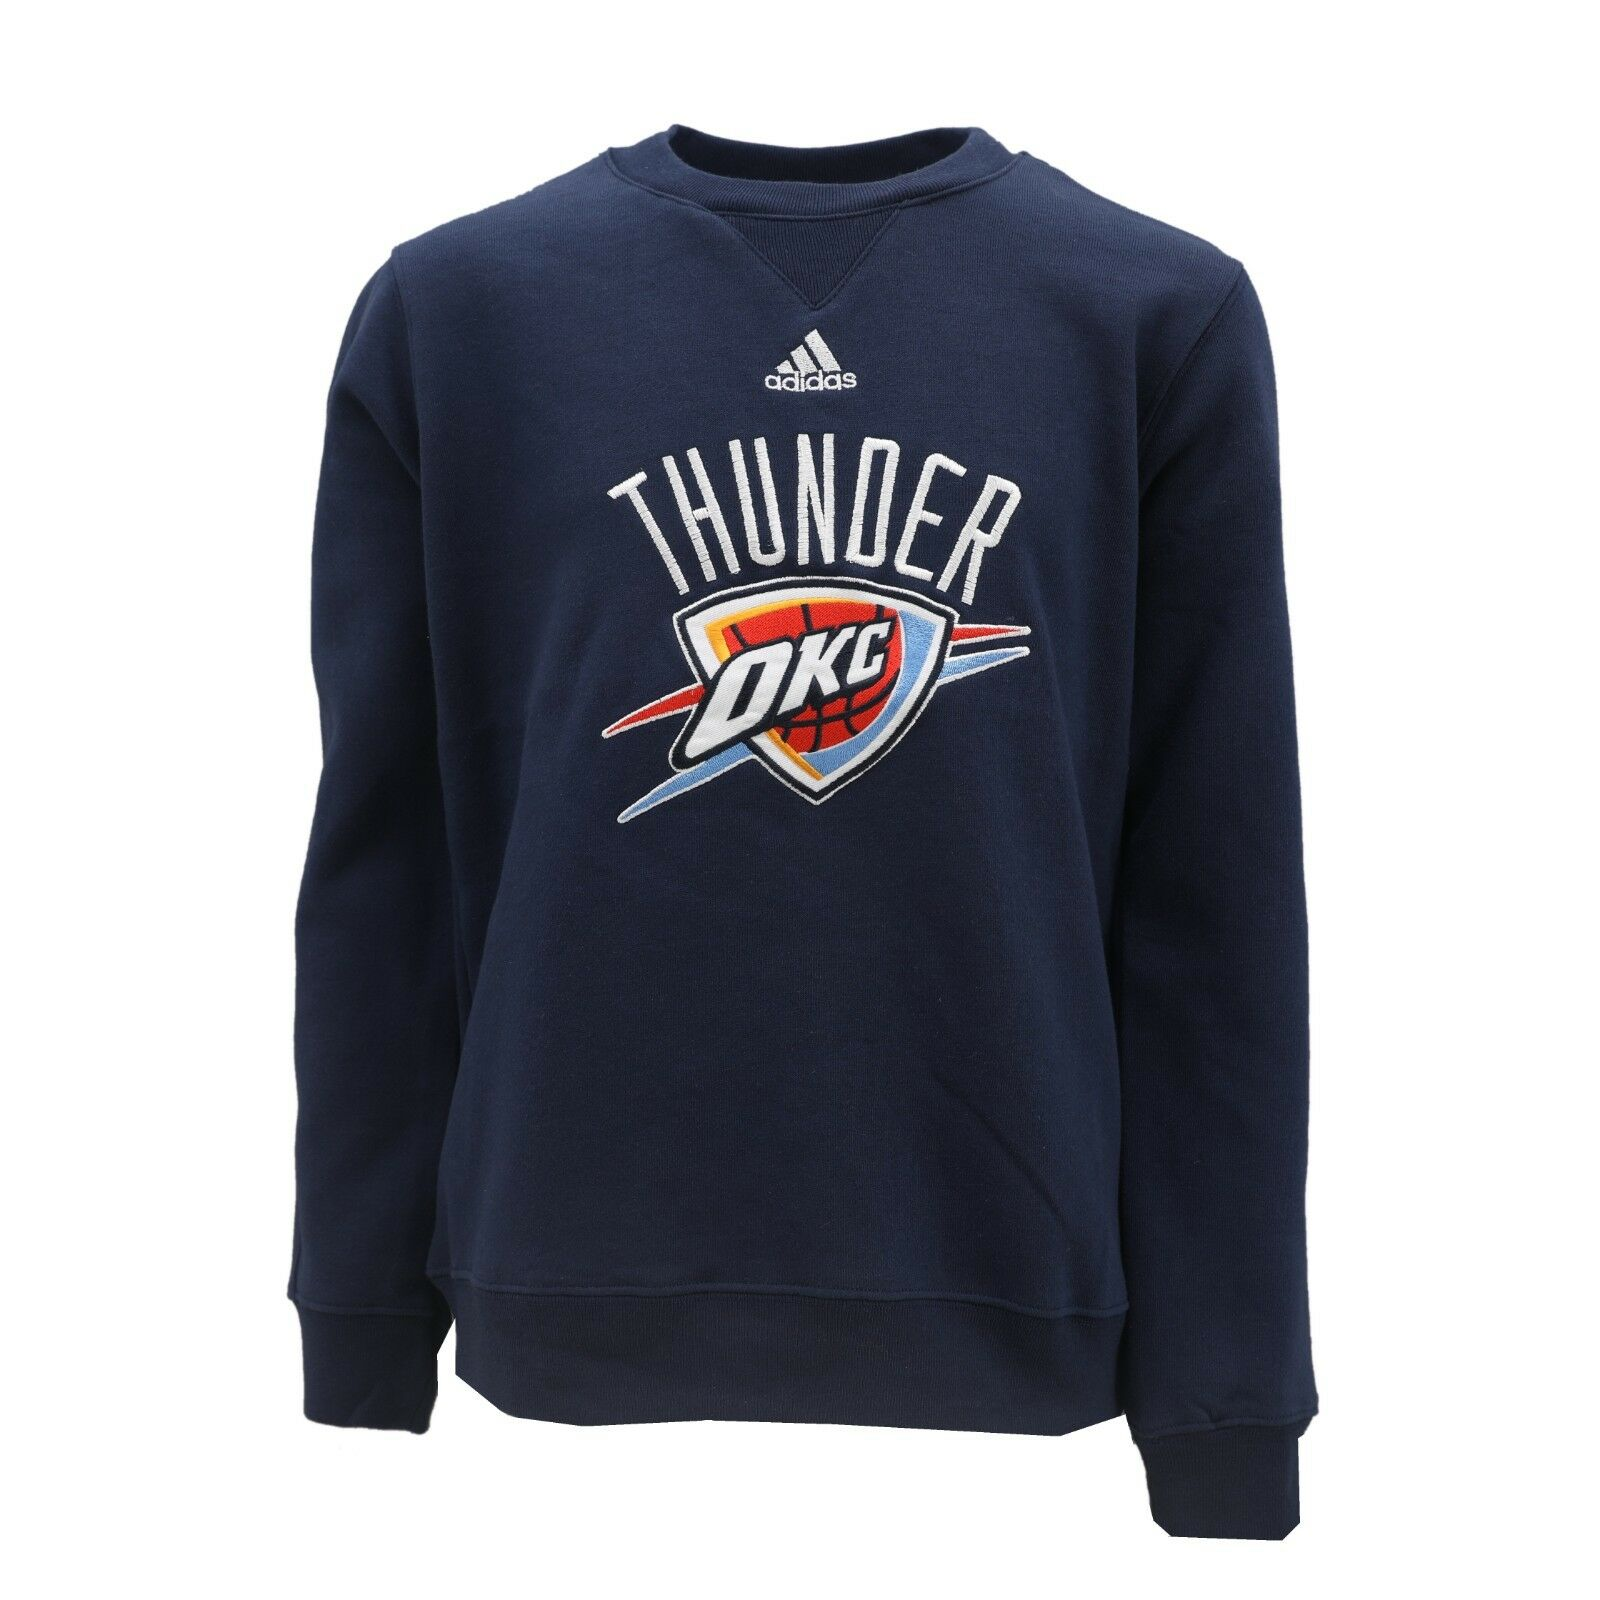 7b38bcc95 Details about Oklahoma City Thunder Official NBA Adidas Kids Youth Size  Sweatshirt New Tags